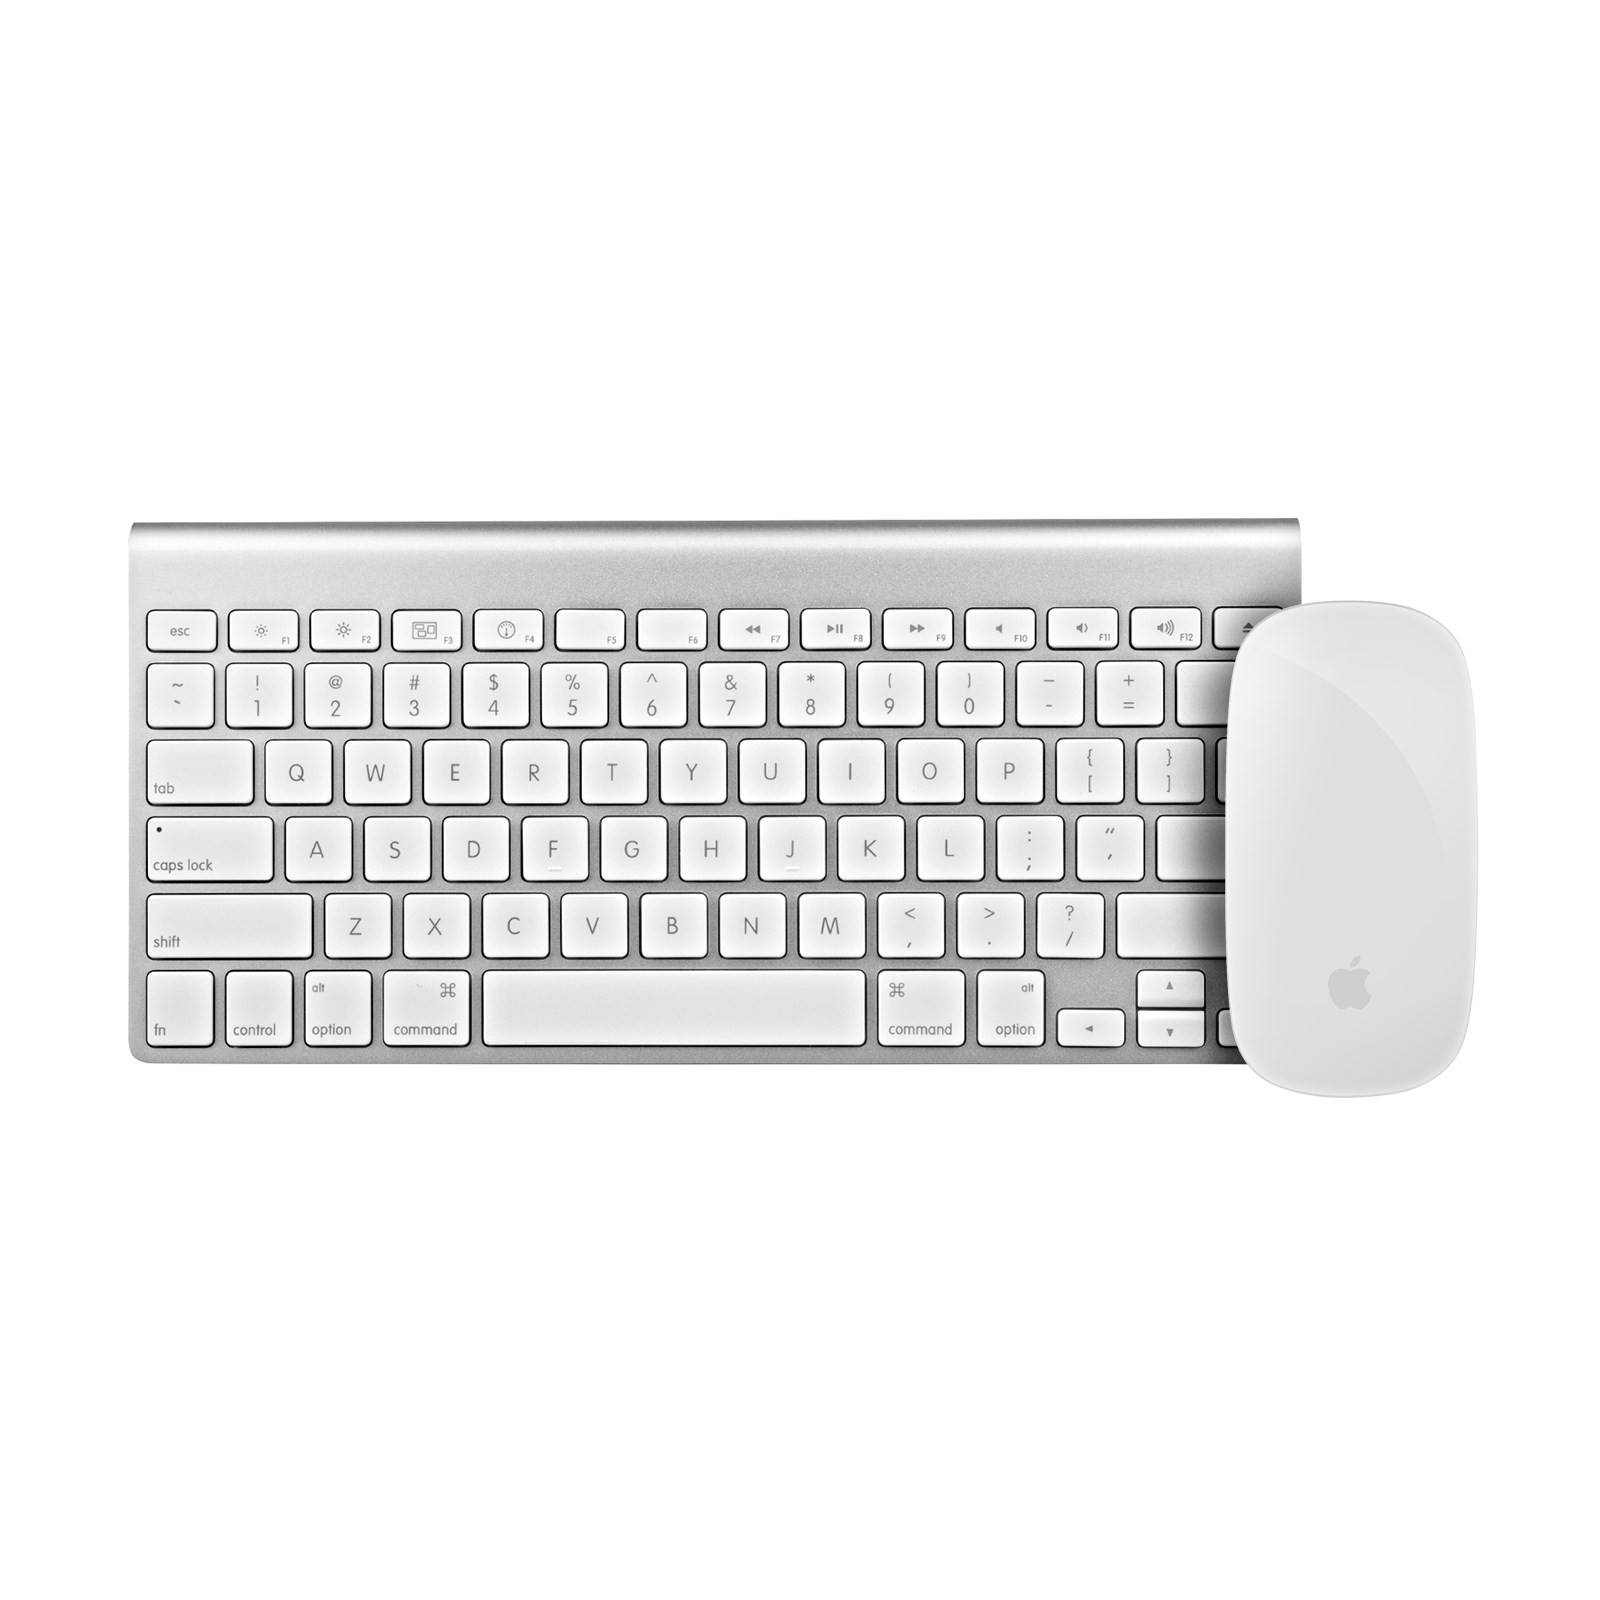 Apple Wireless Bluetooth Keyboard and Magic Mouse Bundle - Refurbished + Magazine Subscription of Your Choice